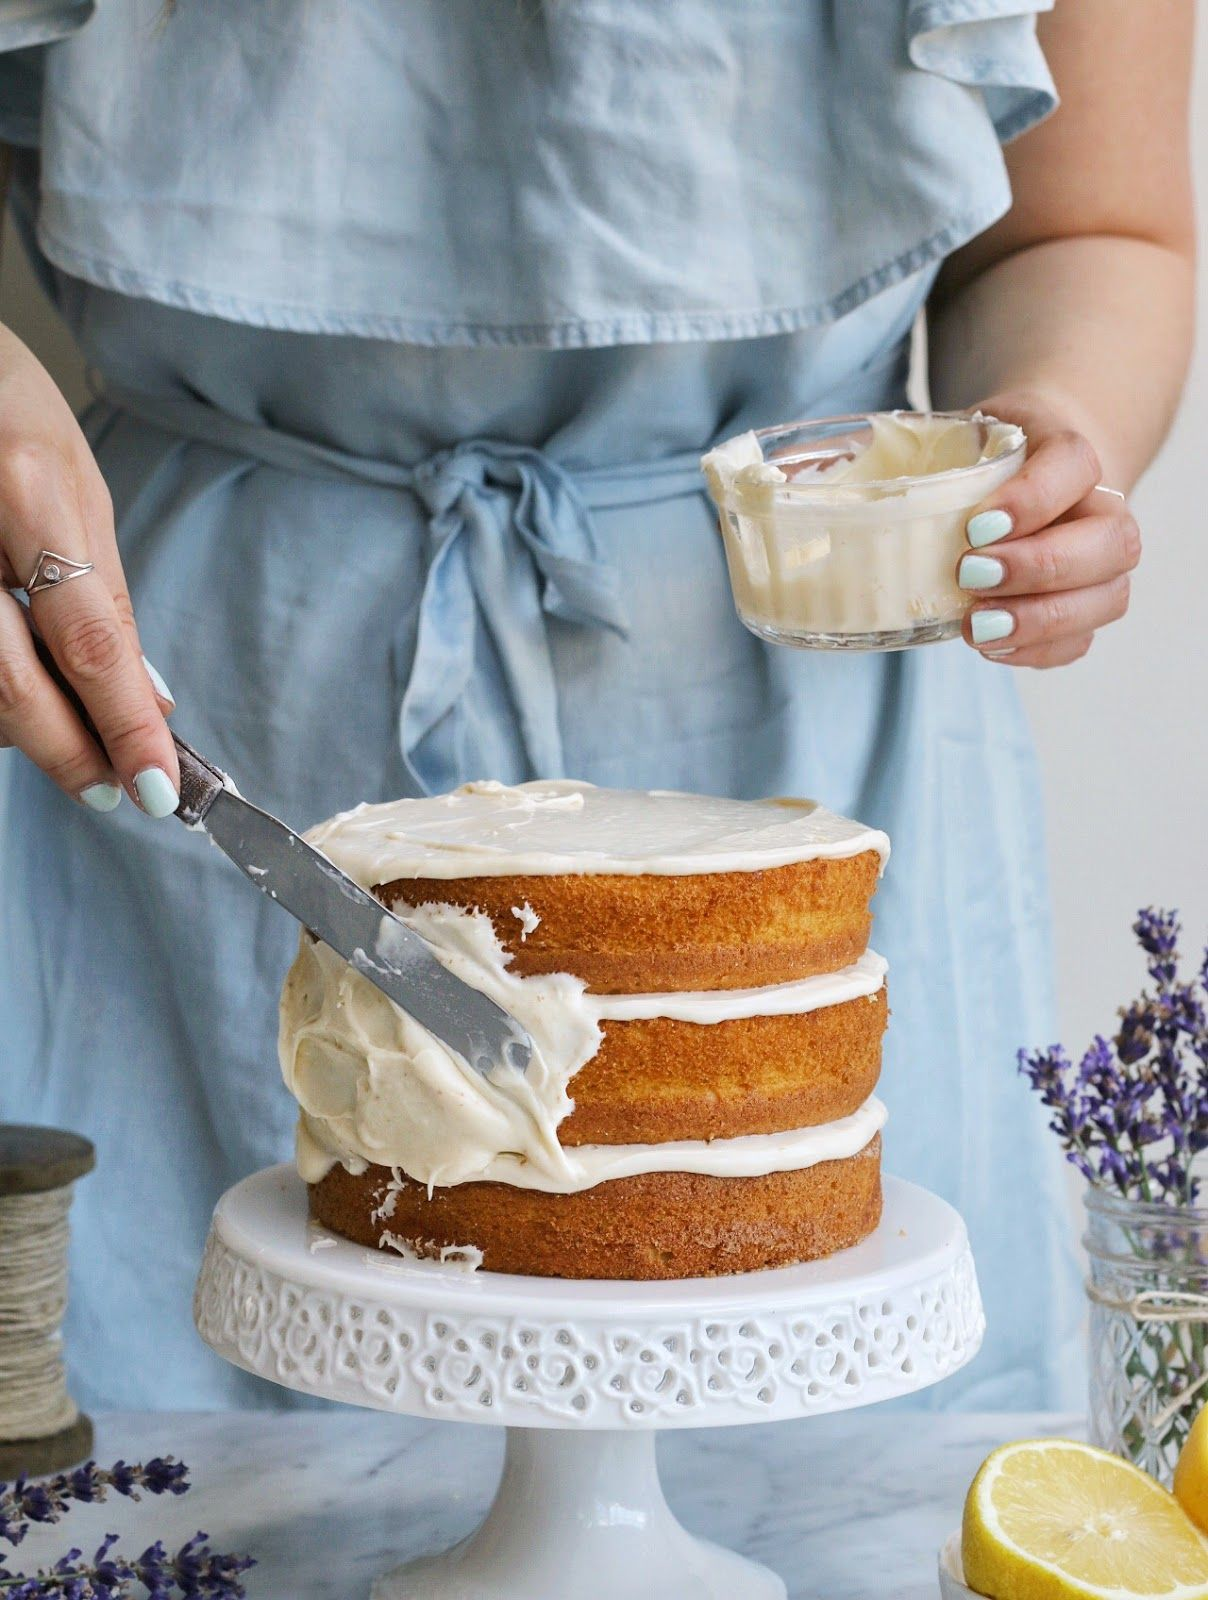 Usually I like to keep my blog, this little space of the internet, pretty light and whimsical. I talk about hilarious cake catastrophes...